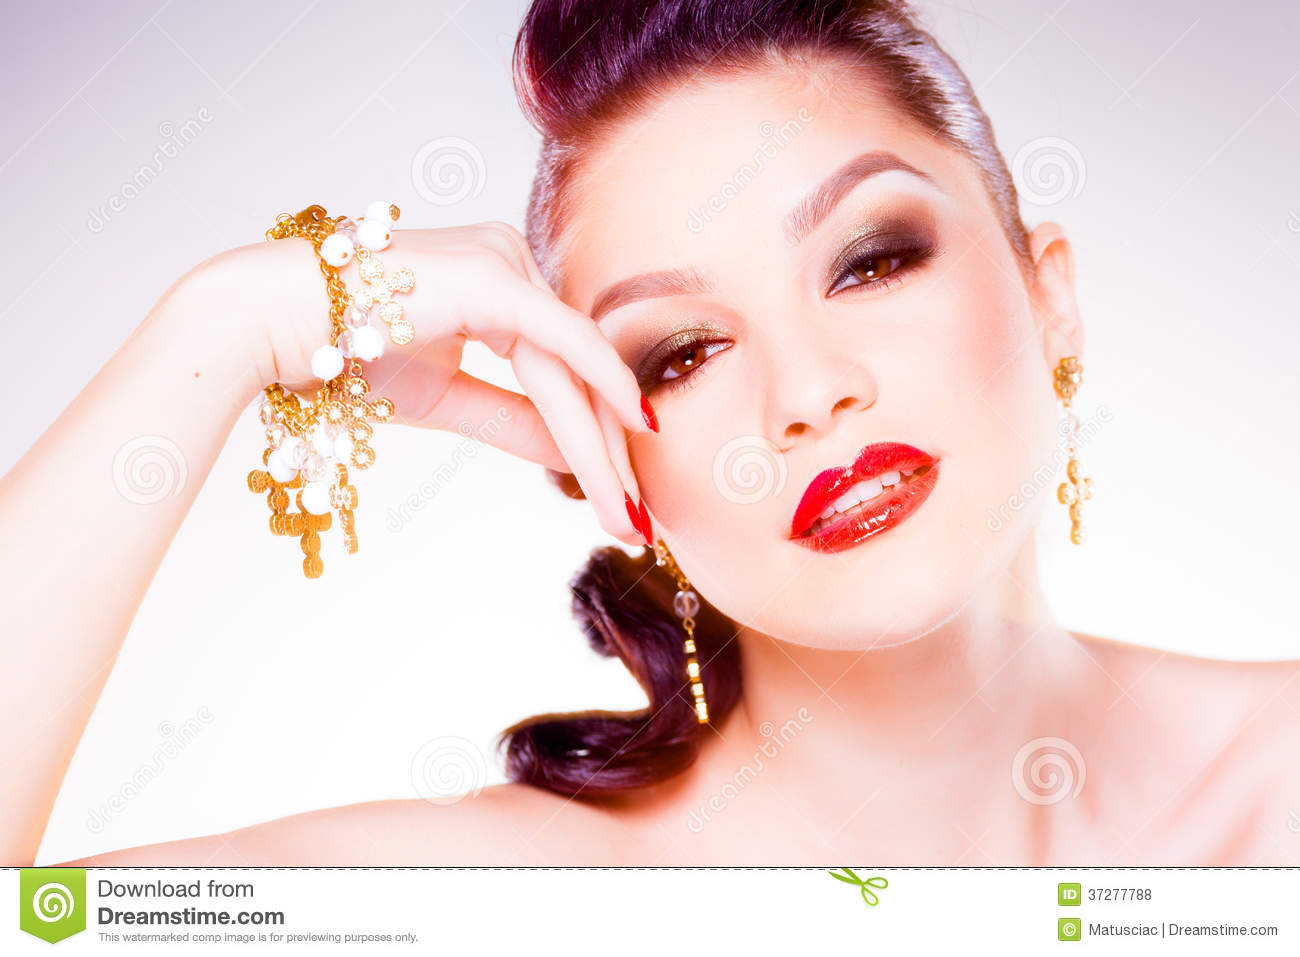 Professional make-up and hairstyle on beautiful woman face - studio beauty shot